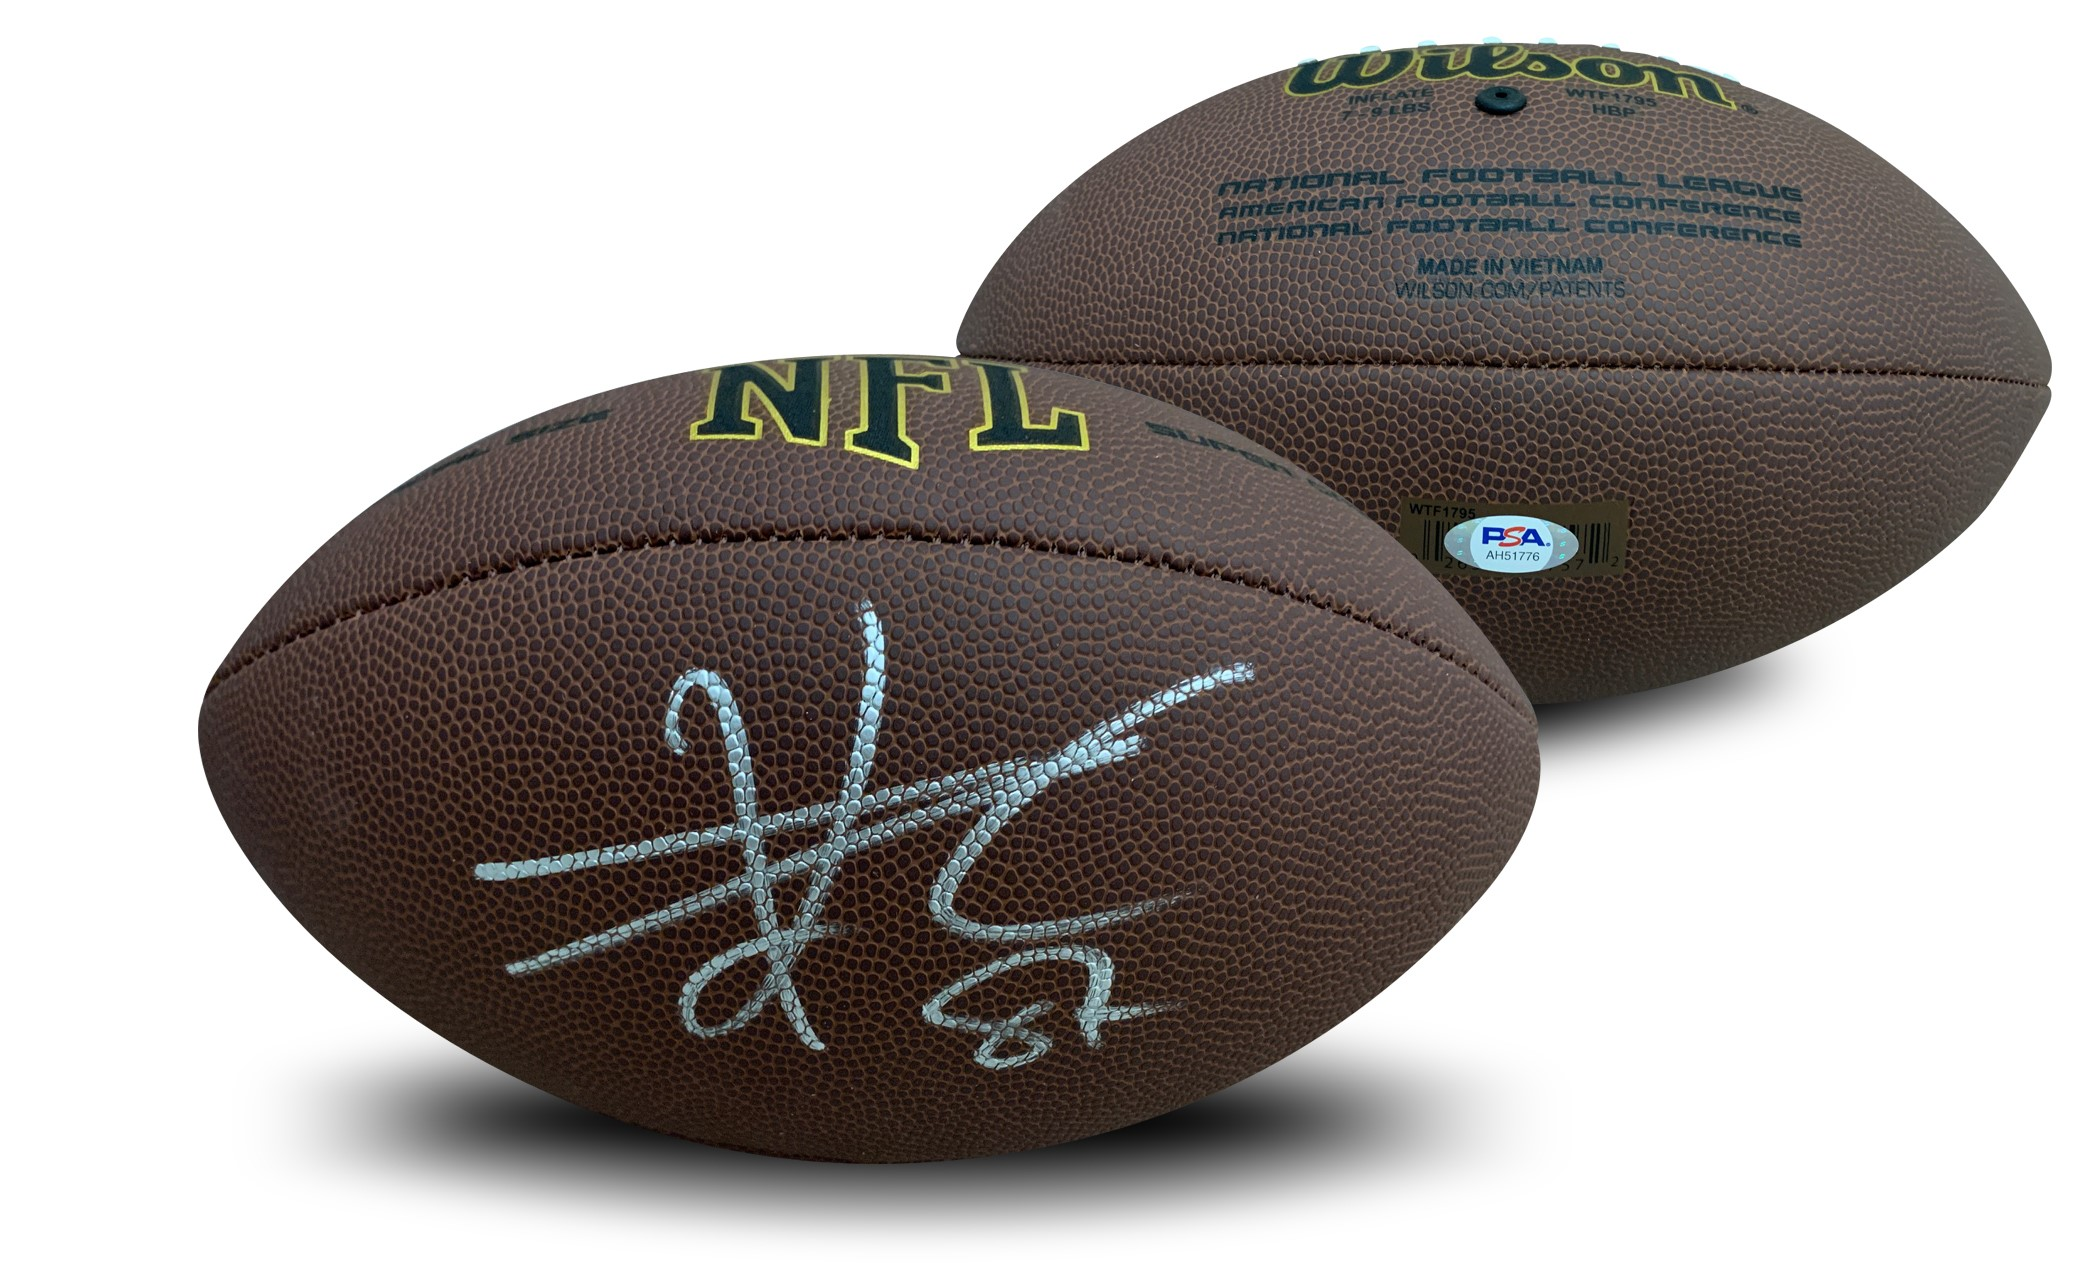 Travis Kelce Autographed Kansas City Chiefs Signed NFL Replica Full Size Football PSA DNA COA Kansas City Chiefs Super Bowl 54 champion Travis Kelce has autographed this officially licensed full size NFL replica football. Autograph is authenticated by PSA/DNA, the world's leading authenticator of sports autographs. Comes with their unique sticker # fixed to the item and verified on their website. Also, comes with their certificate of authenticity with same matching #.